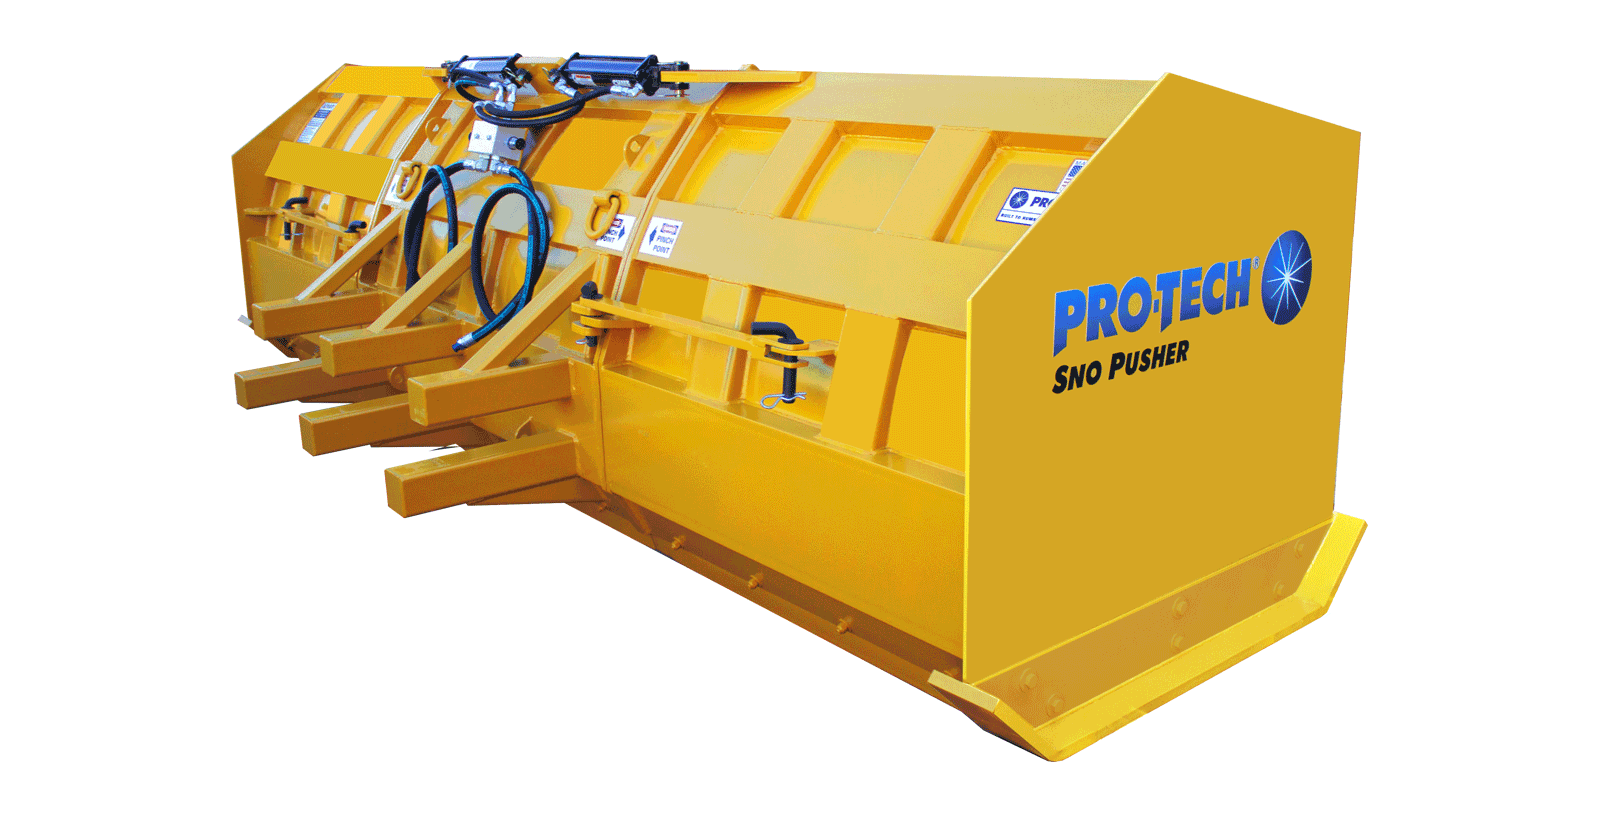 foldout snow pusher hydraulics